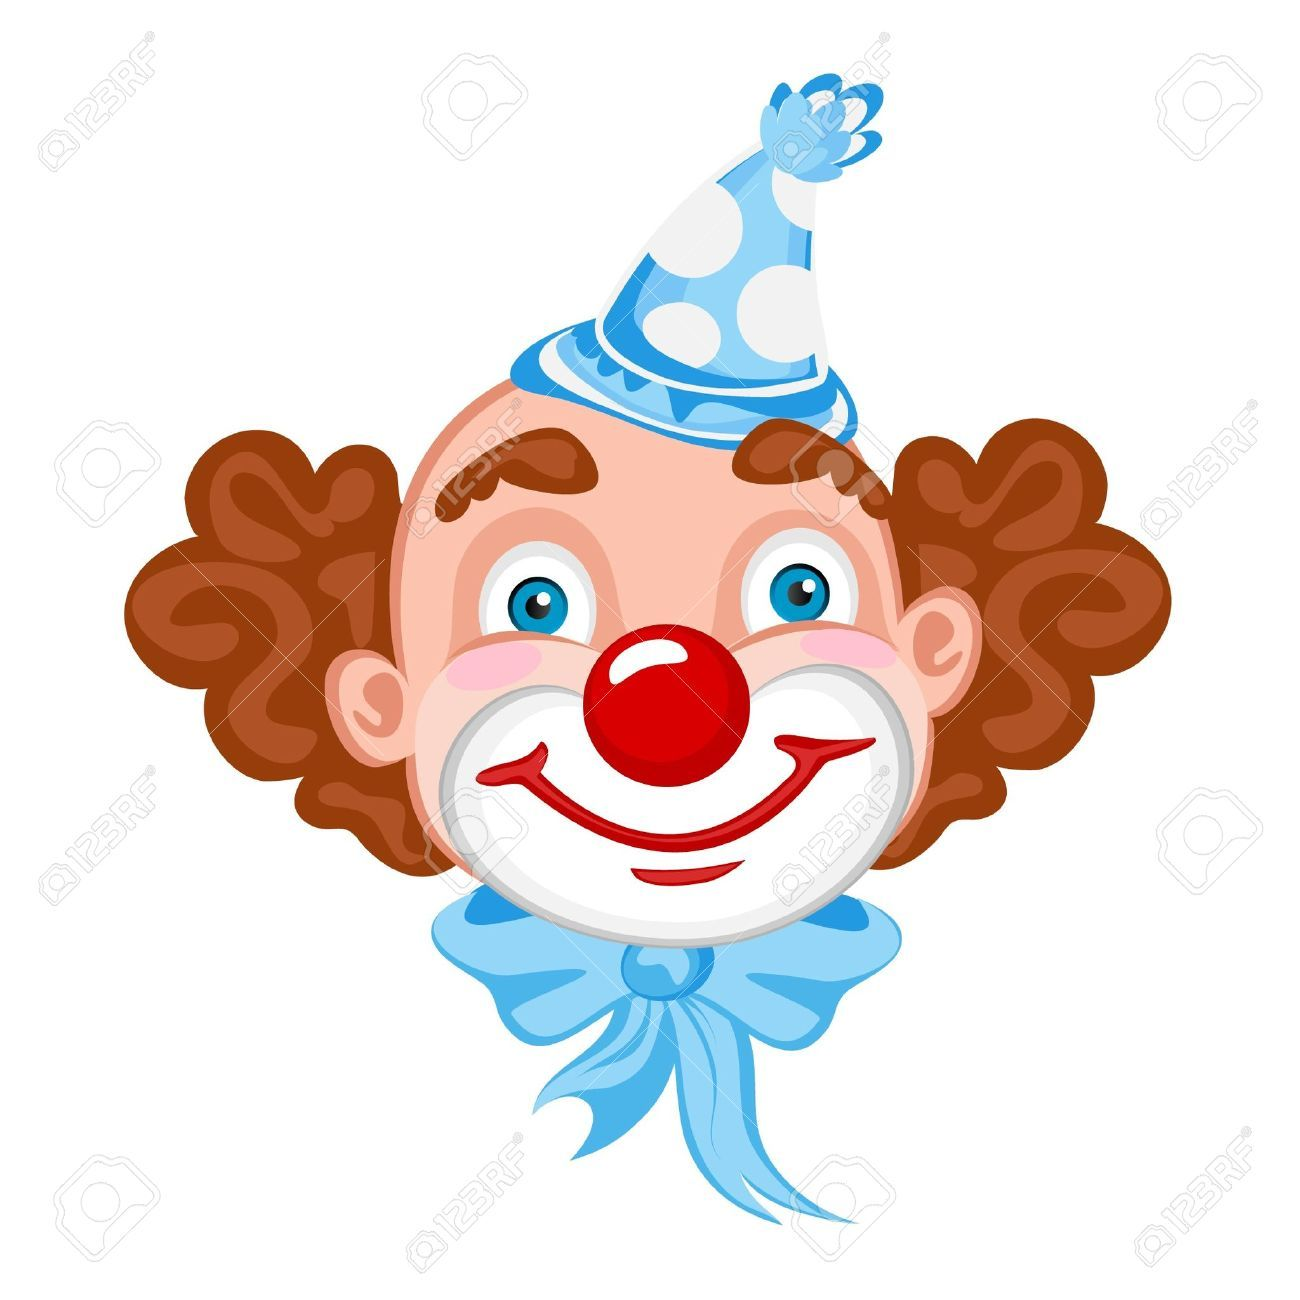 Circus joker face clipart png black and white download Clown Face Template. best photos of clown face template circus ... png black and white download